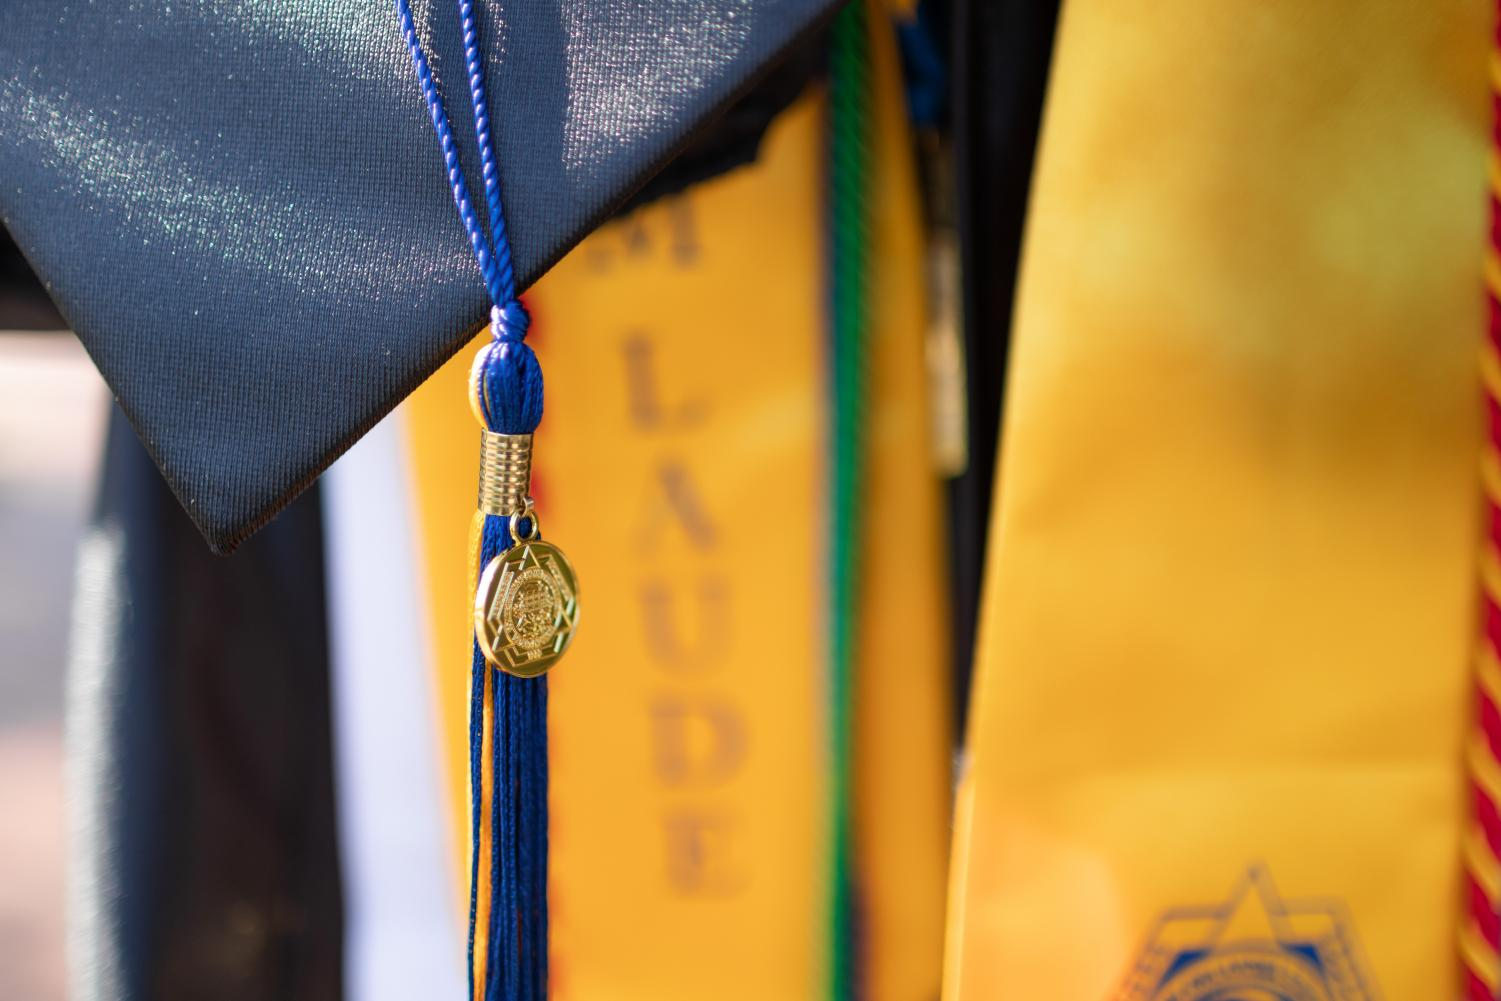 Student achievements will be celebrated during the first in-person commencement ceremonies to be held in a year.